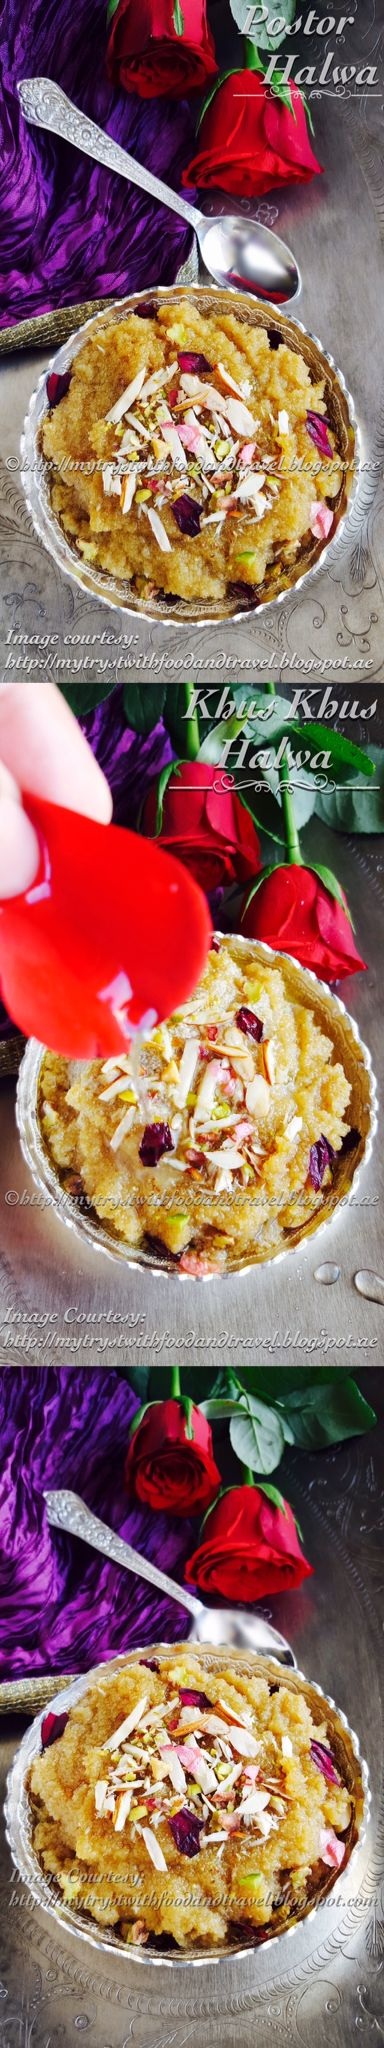 Murshidabad postor halwa / Khus khus halva (Murshidabad style). Recipe link --> https://mytrystwithfoodandtravel.blogspot.ae/2016/07/murshidabad-postor-halwa-recipe-khus.html Try out this Royal dish from the district of Nawabs, Murshidabad. Khus khus halva is sure to tease your visual sense and overwhelm your taste buds. Perfect for celebrations and special occasions and very easy to make.